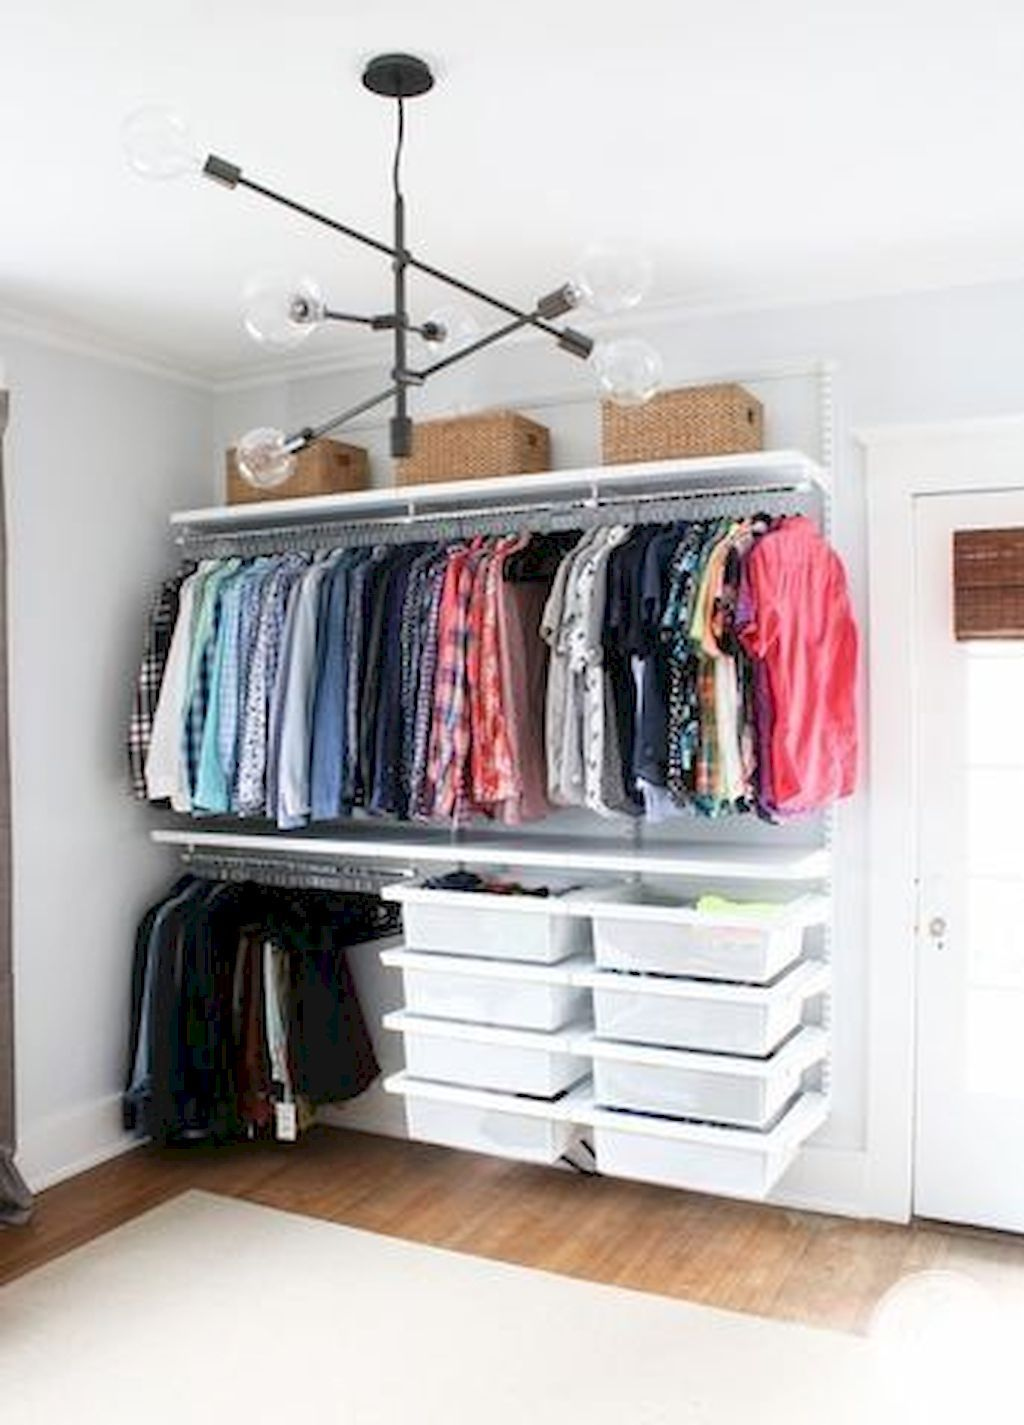 Fascinating Your House Saving Software For Your Clothes In 2020 Clothes Storage Without A Closet Clothing Rack Bedroom Small Bedroom Storage